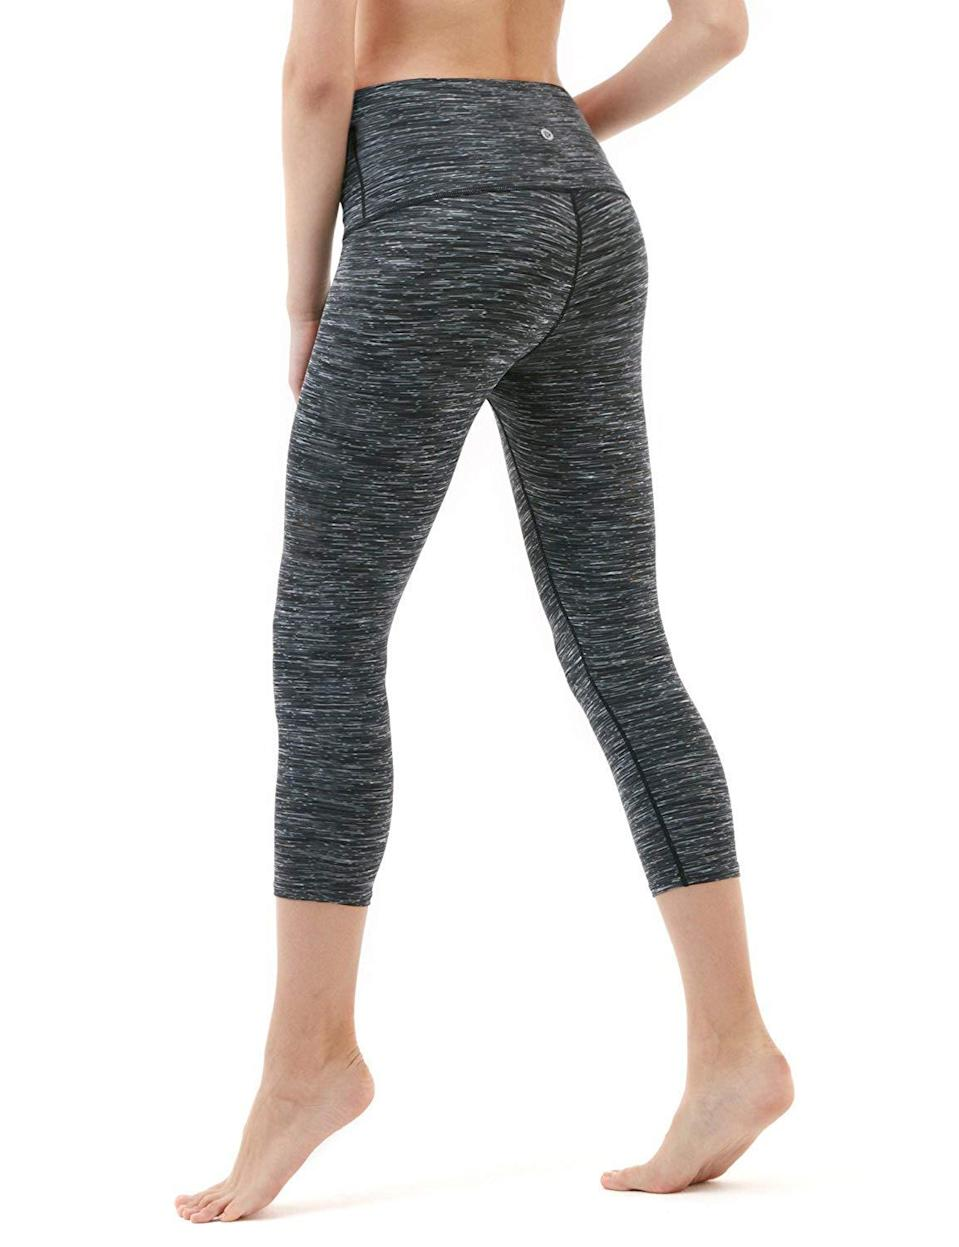 """<h3><a href=""""https://amzn.to/37oPqJw"""" rel=""""nofollow noopener"""" target=""""_blank"""" data-ylk=""""slk:TSLA High-Rise Leggings"""" class=""""link rapid-noclick-resp"""">TSLA High-Rise Leggings</a></h3><br><strong>Wendy</strong><br><br><strong>How She Discovered It:</strong> """"Looking through Amazon for yoga pants and it had great reviews."""" <br><br><strong>Why It's A Hidden Gem:</strong> """"I took a year off from work to try to get my life back in order. Part of that process was becoming a certified yoga teacher. Teaching yoga pays next to nothing and I was looking for yoga pants that fit well, felt good, didn't stretch out right away and didn't cost me a fortune. I stumbled on these: $14 for a pair of yoga pants that I wear several times a week, wash over and over and they still keep their shape, aren't see-through, and look good. I went back and bought other colors, but the space-dyed charcoal are still my favorite. I get compliments on them all the time and I love that I didn't have to spend a fortune!""""<br><br><strong>TSLA</strong> High-Rise Yoga Capris With Pockets, $, available at <a href=""""https://amzn.to/38m2uRt"""" rel=""""nofollow noopener"""" target=""""_blank"""" data-ylk=""""slk:Amazon"""" class=""""link rapid-noclick-resp"""">Amazon</a>"""